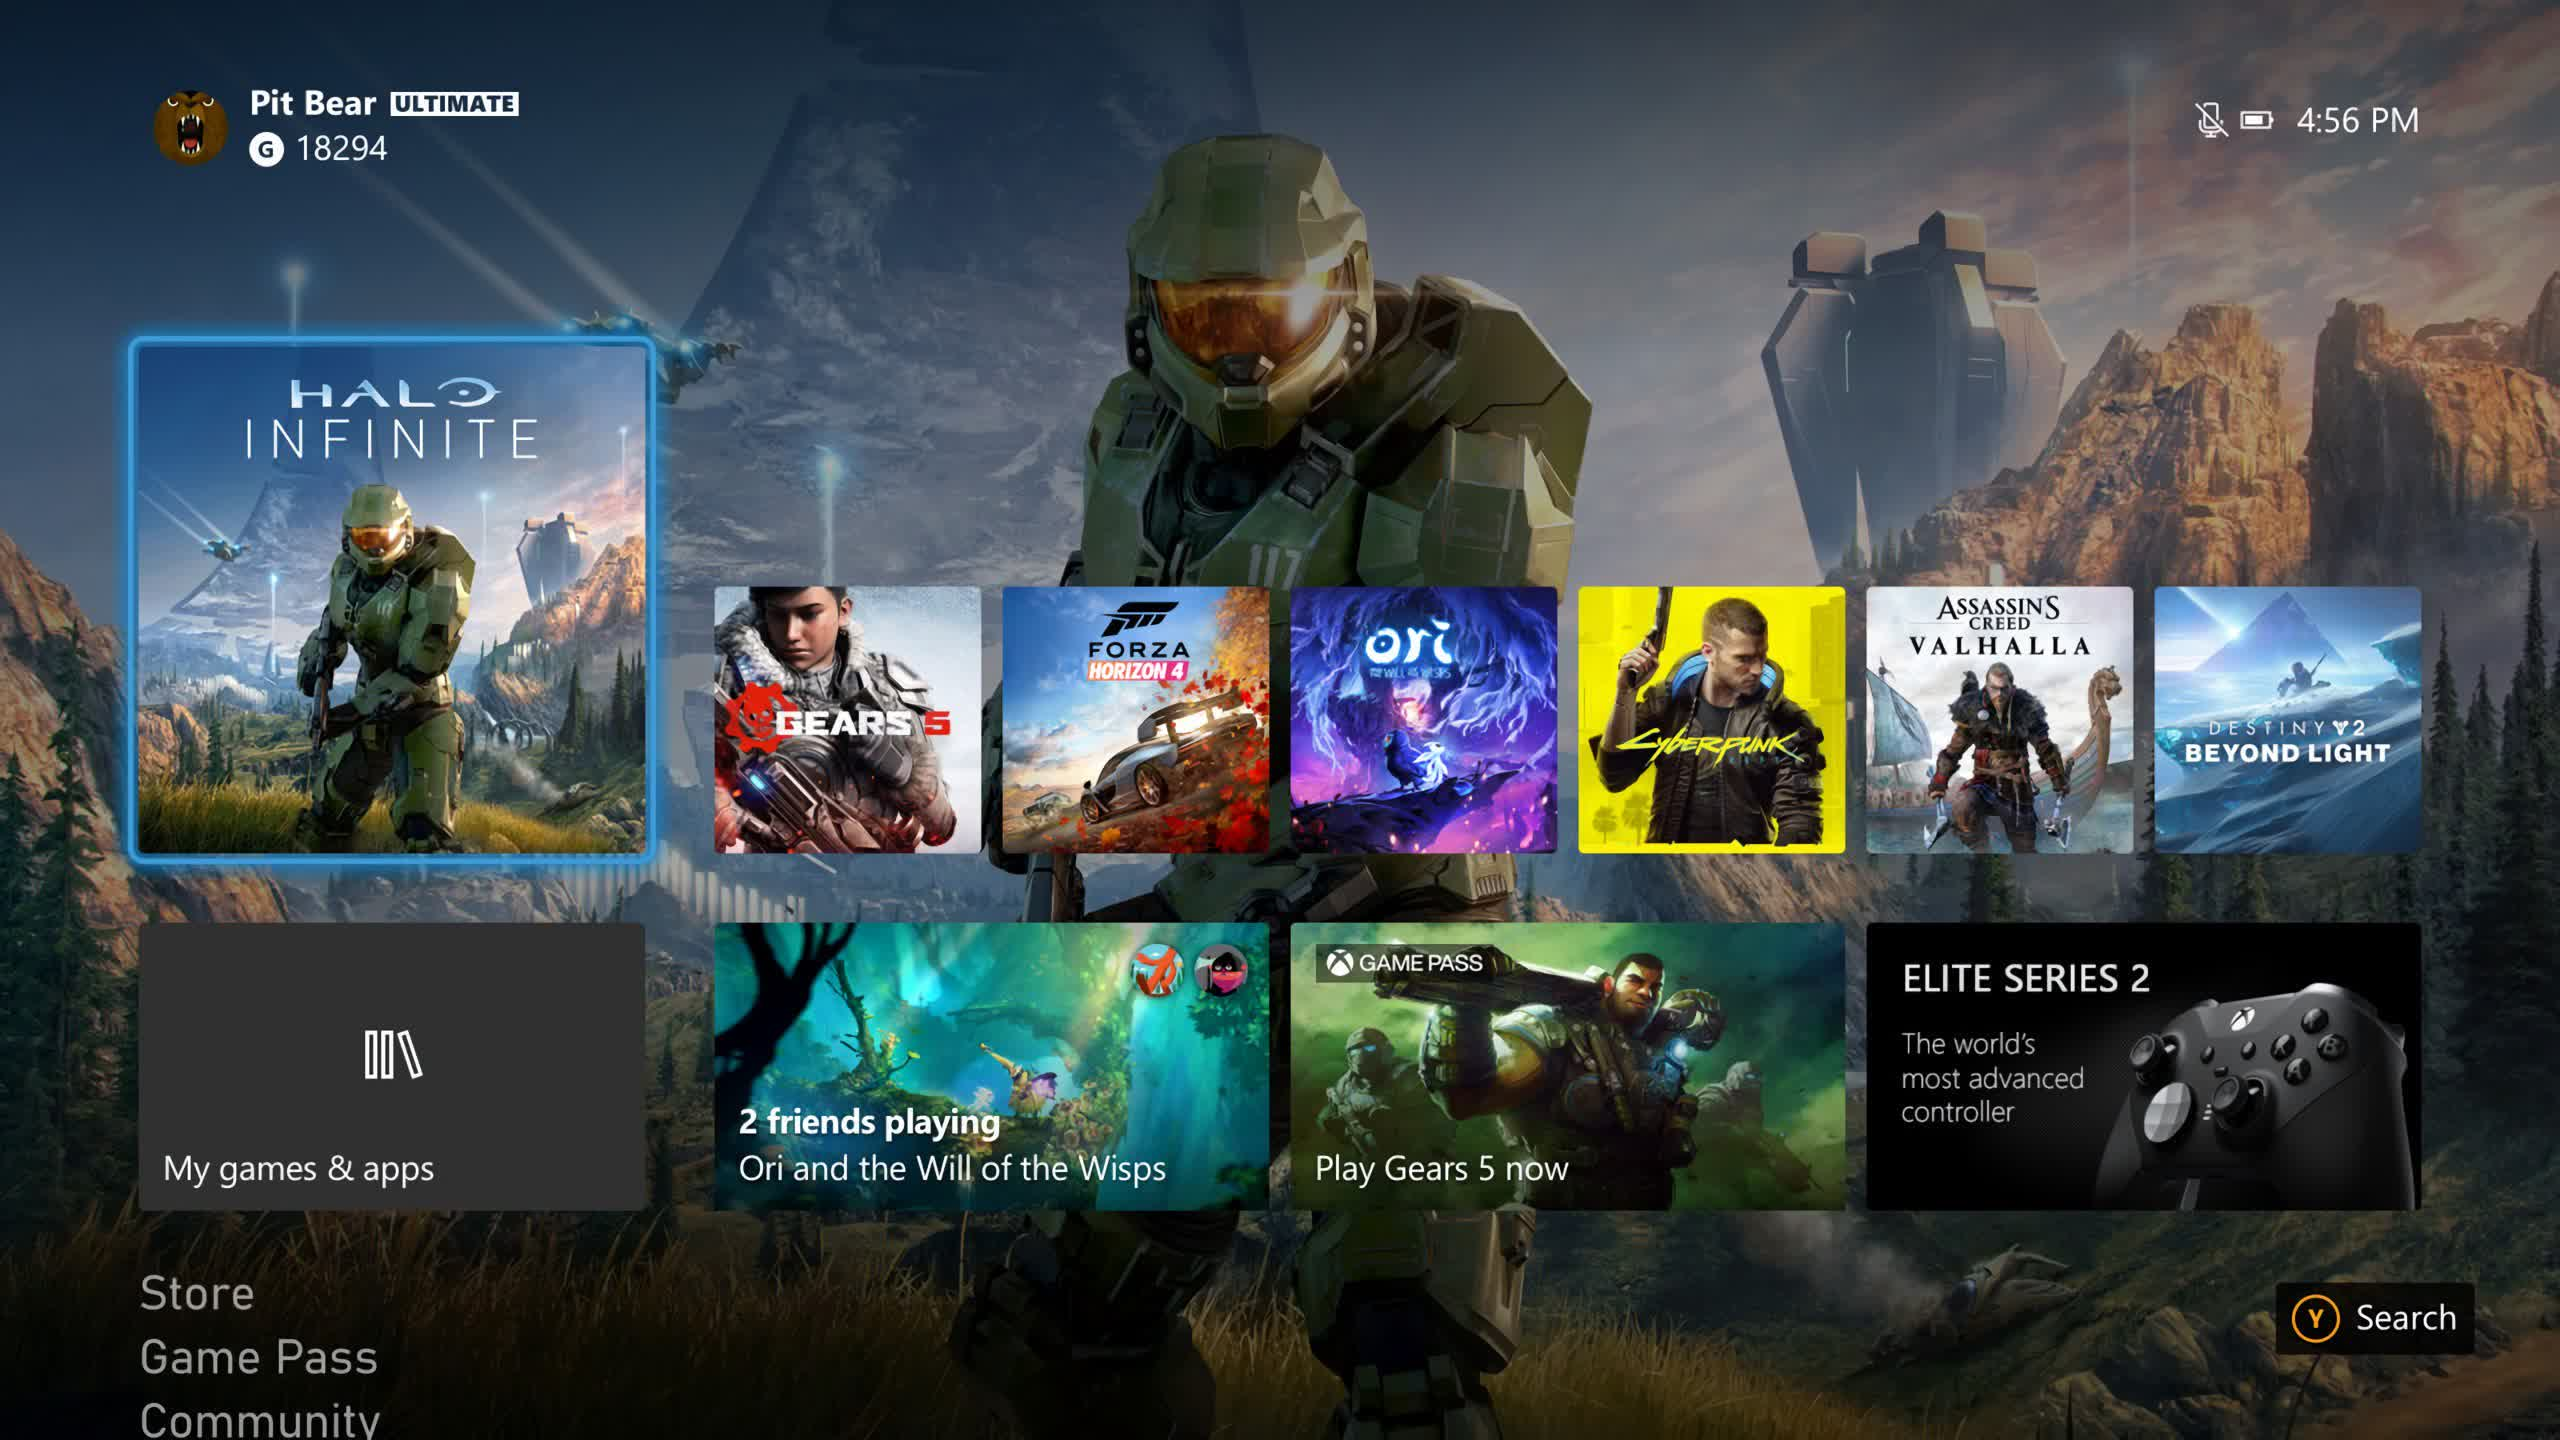 The redesigned Xbox user interface hits Insiders' consoles today